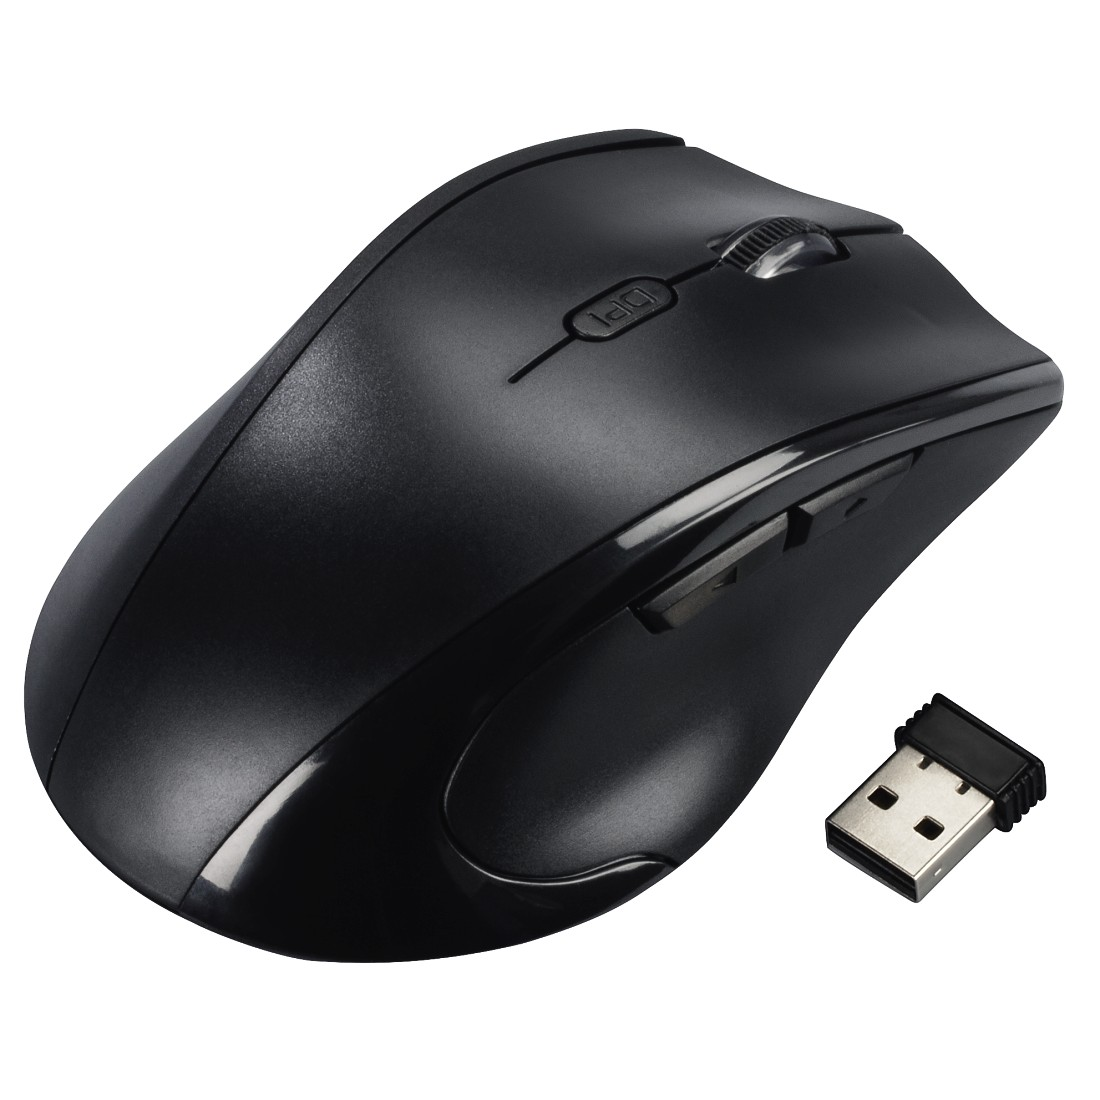 abx High-Res Image - Hama, Riano Left-handed Mouse, black